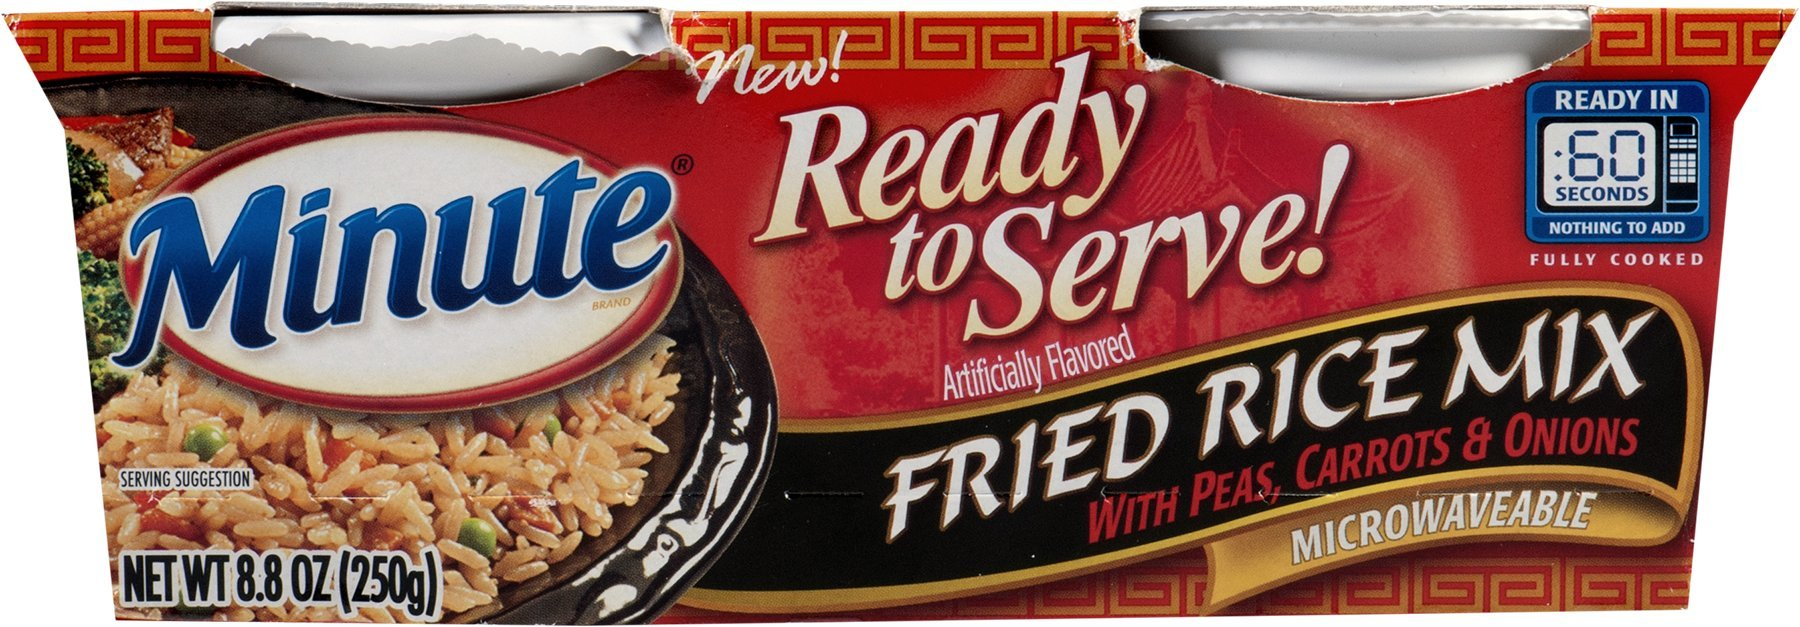 Minute Ready To Serve! Fried Rice Mix - 2 CT